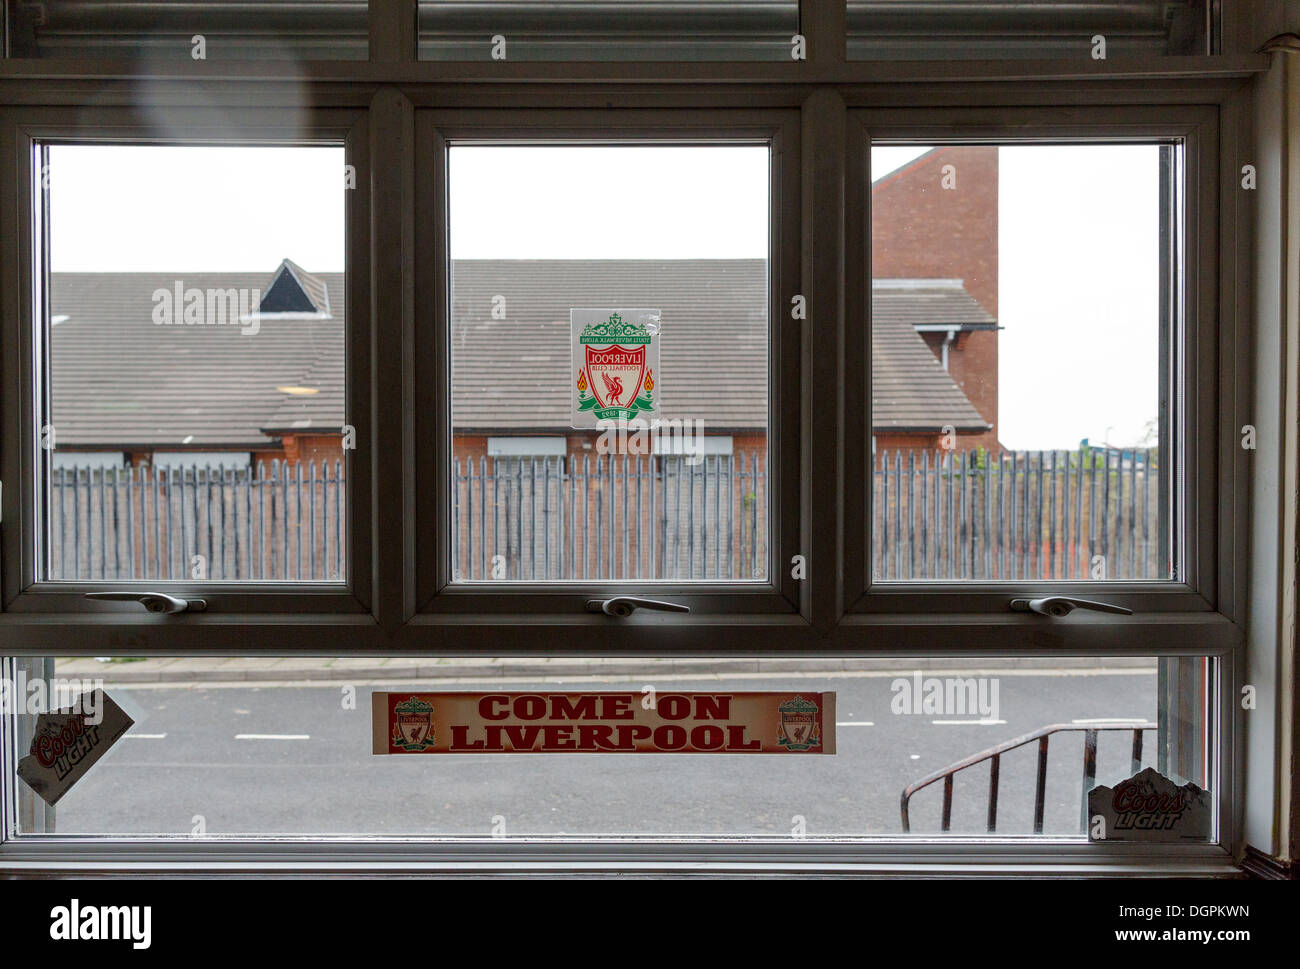 View through a window of The Park pub, Anfield, Liverpool, UK - Stock Image